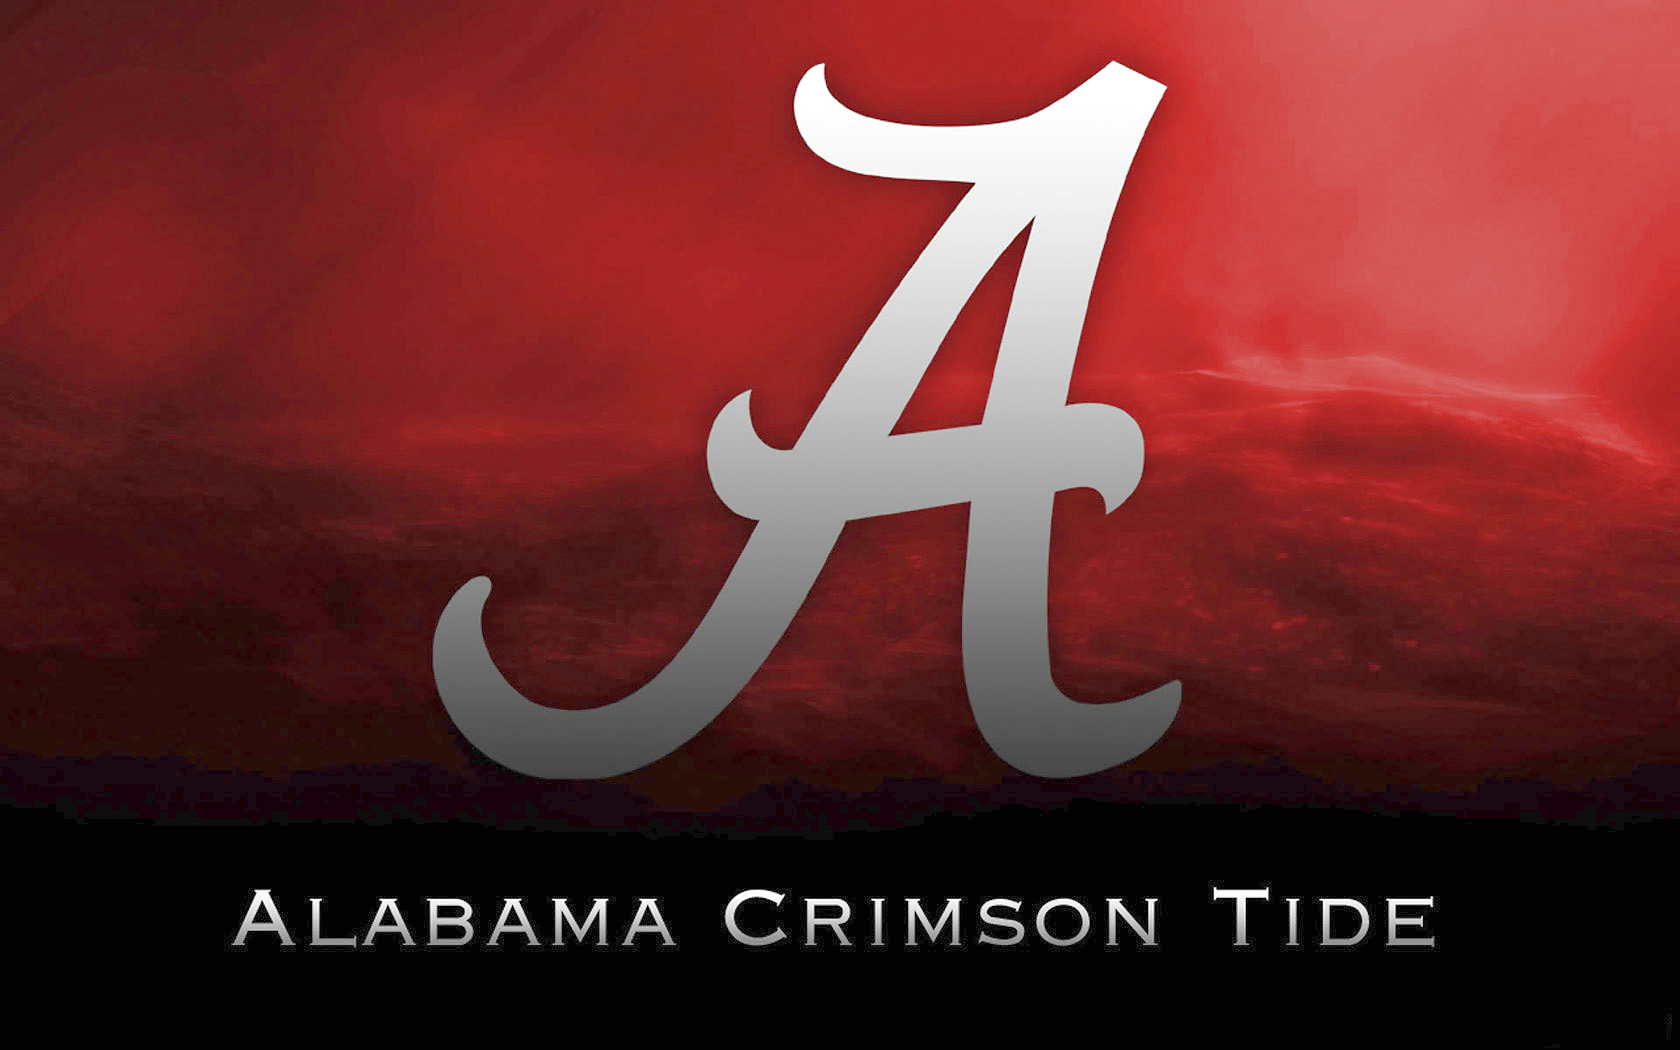 crimson tide football 1680 x 1050 548 kb jpeg alabama crimson tide 1680x1050